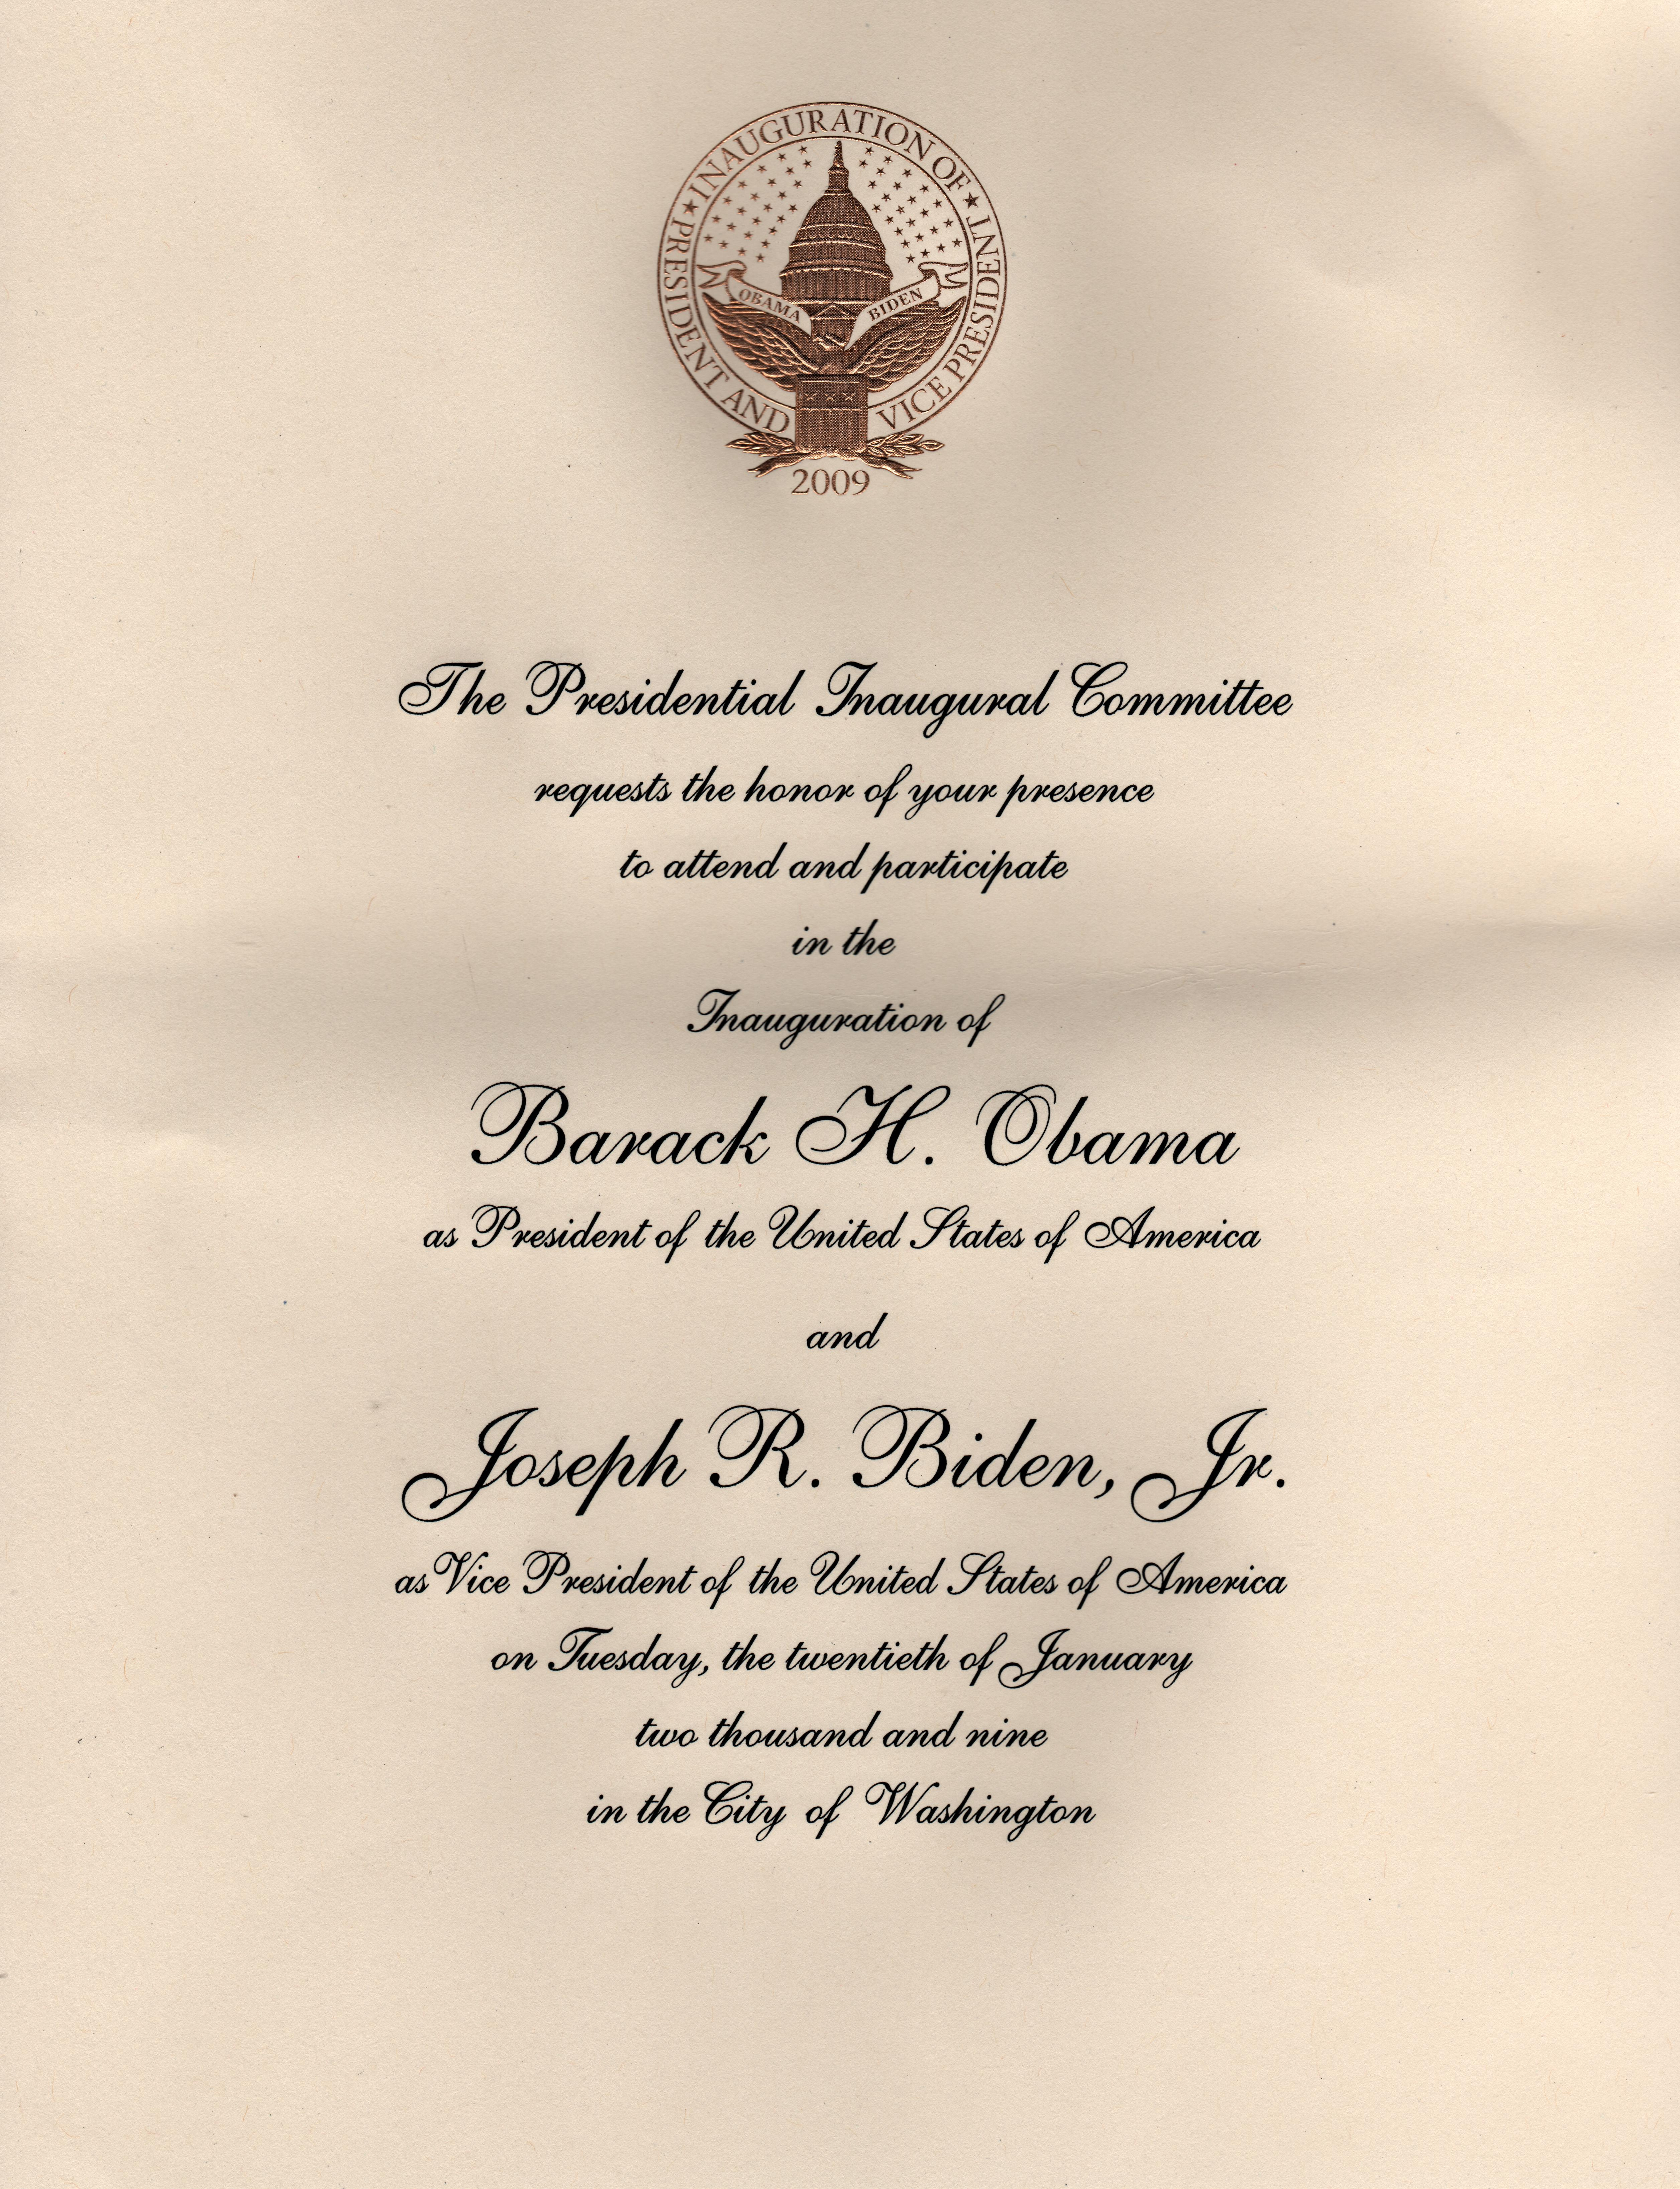 FileInaugural invitation 2009jpg Wikipedia – Inauguration Invitation Card Sample